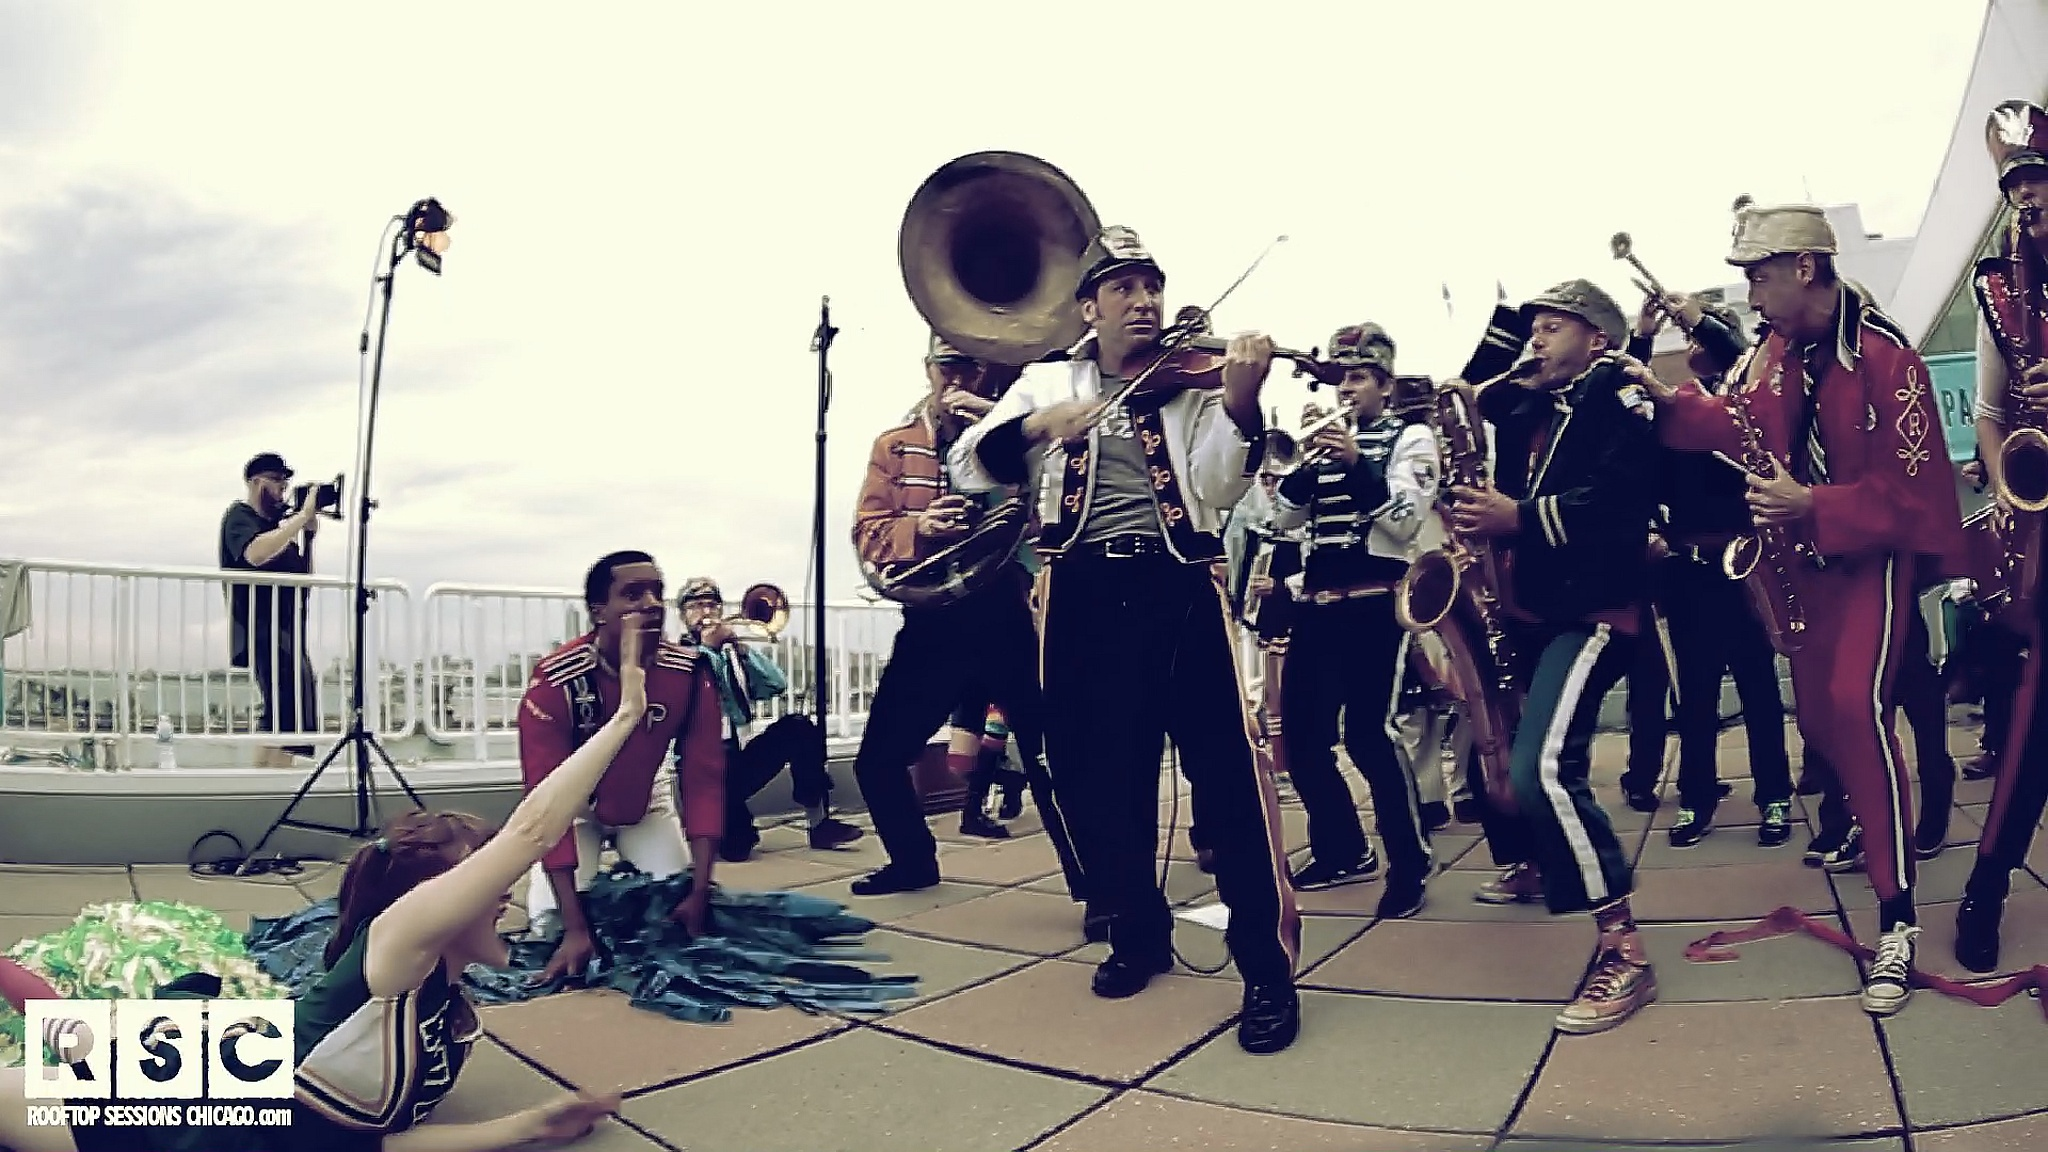 Mucca Pazza marches to an eclectic beat for WBEZ's High Fidelity Music Series!